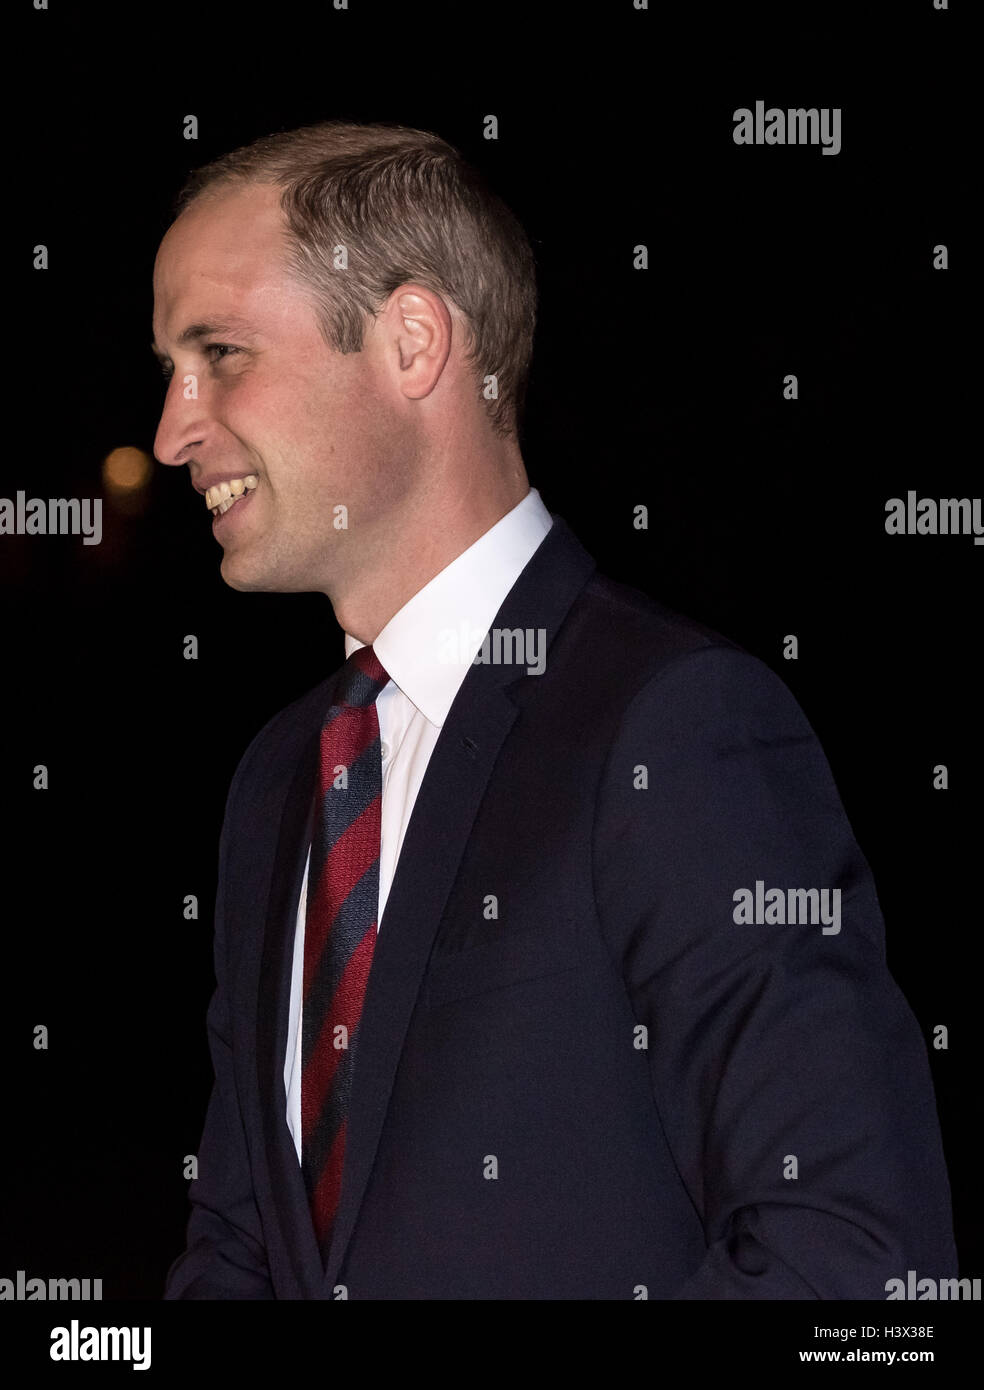 London, UK. 12th October, 2016. The Duke of Cambridge, Prince William, arrives at Royal Hospital Chelsea to present - Stock Image